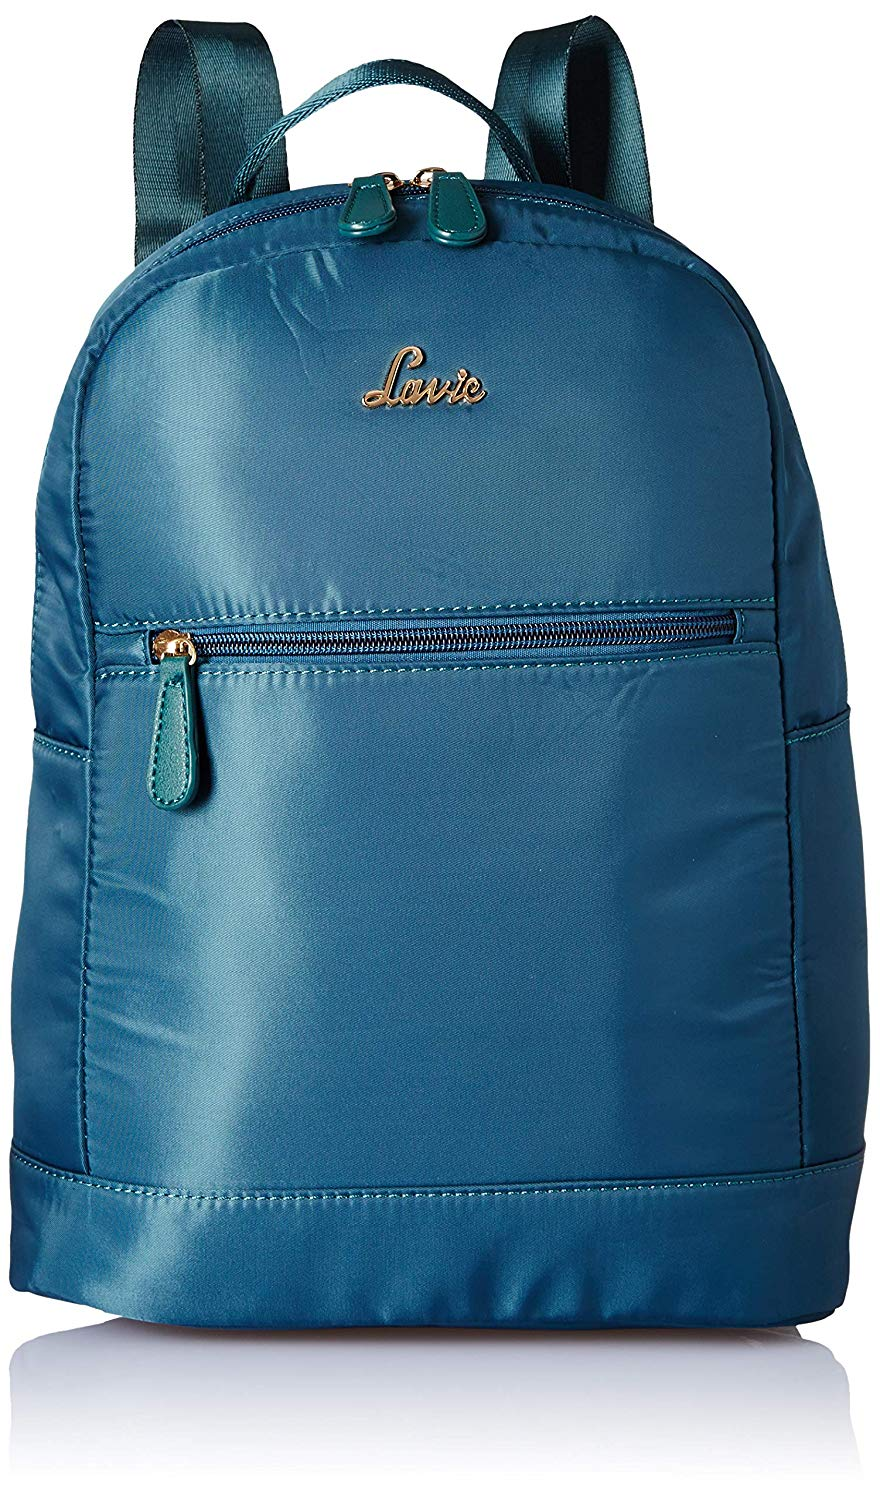 lavie women's backpack